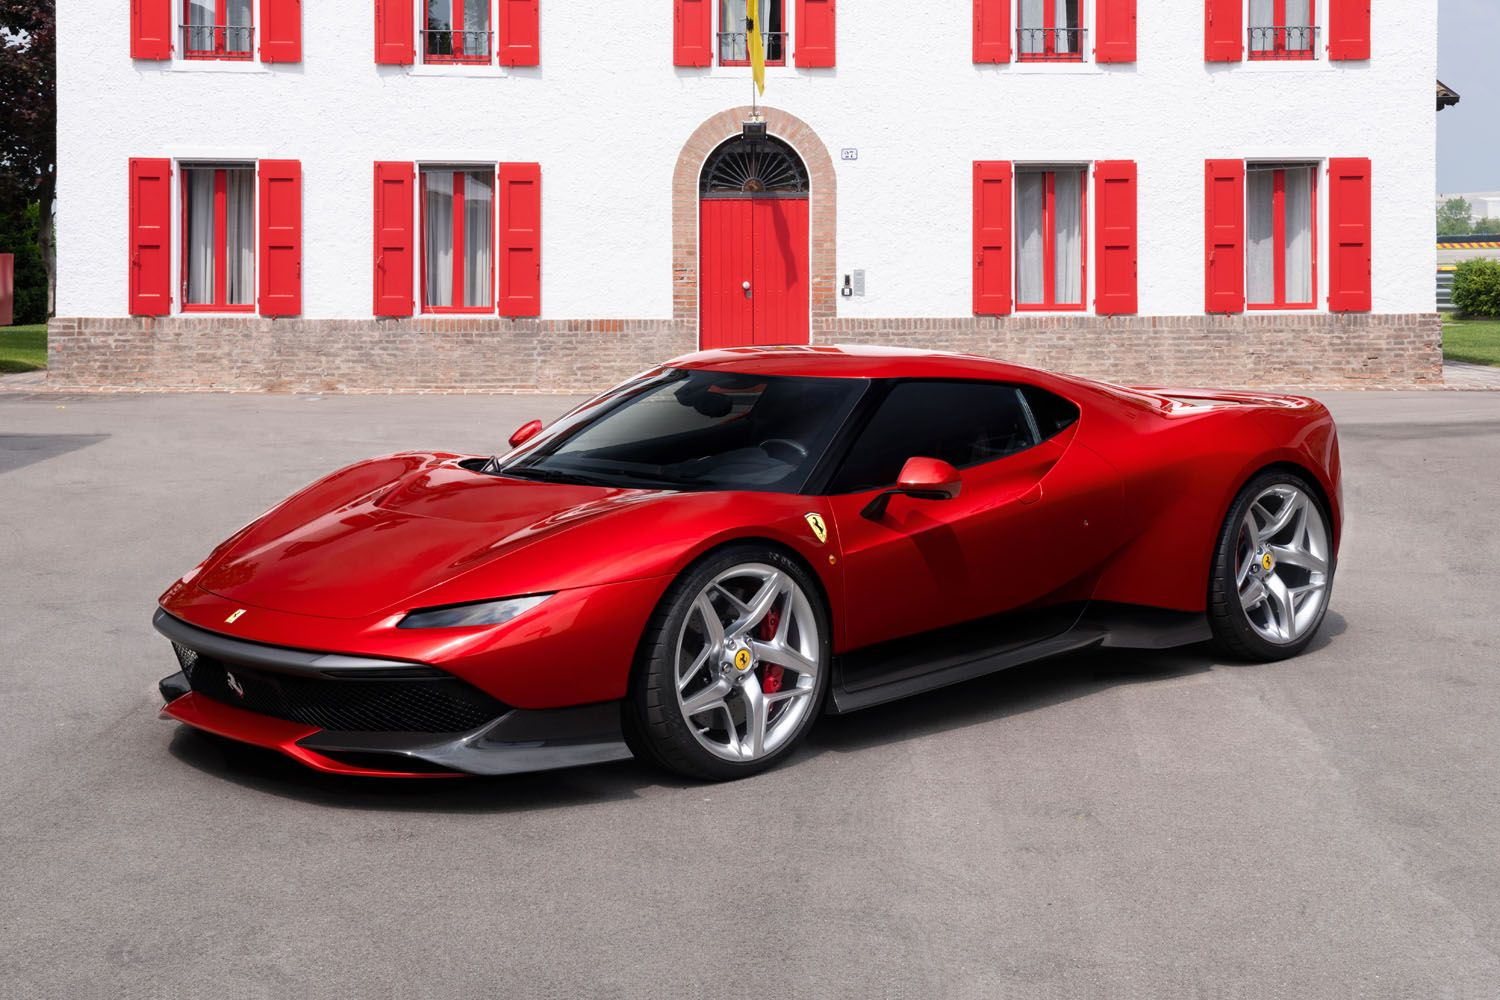 A Look At Ferrari's One-Off SP38 Supercar